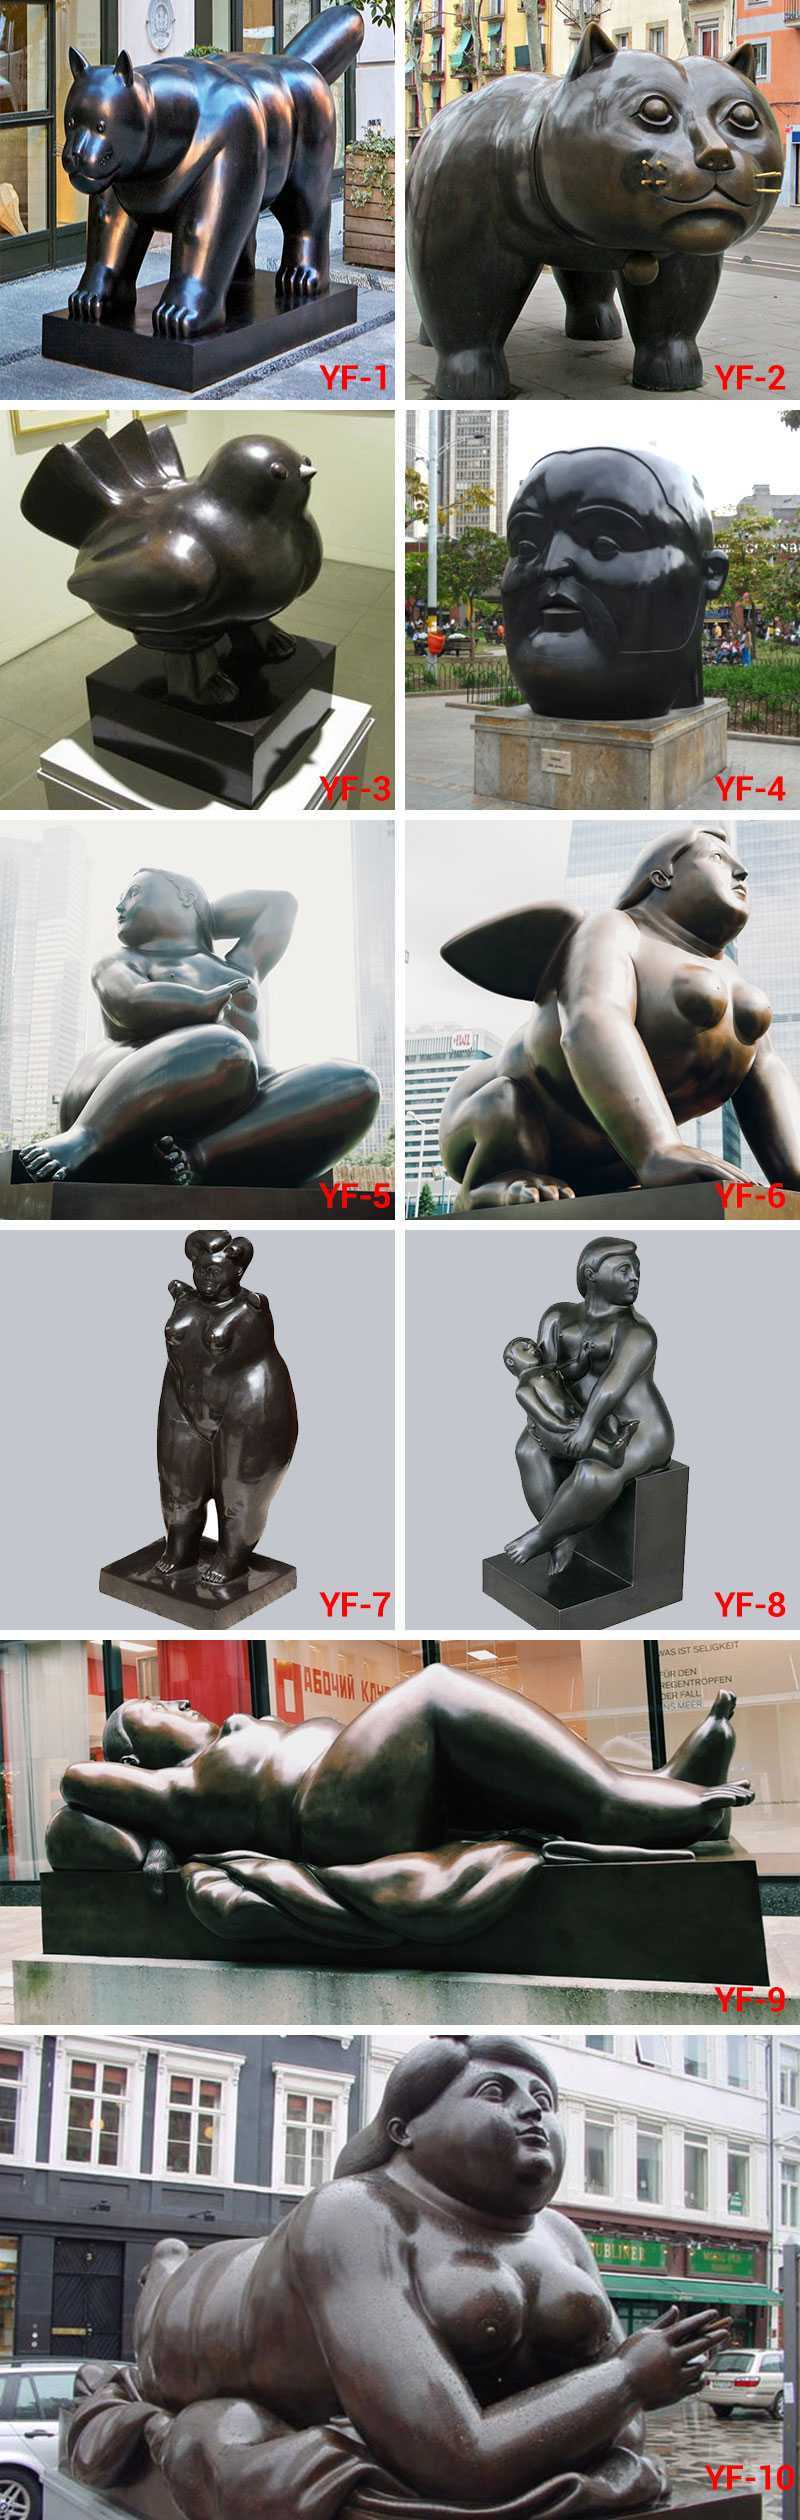 Botero Statue for sale